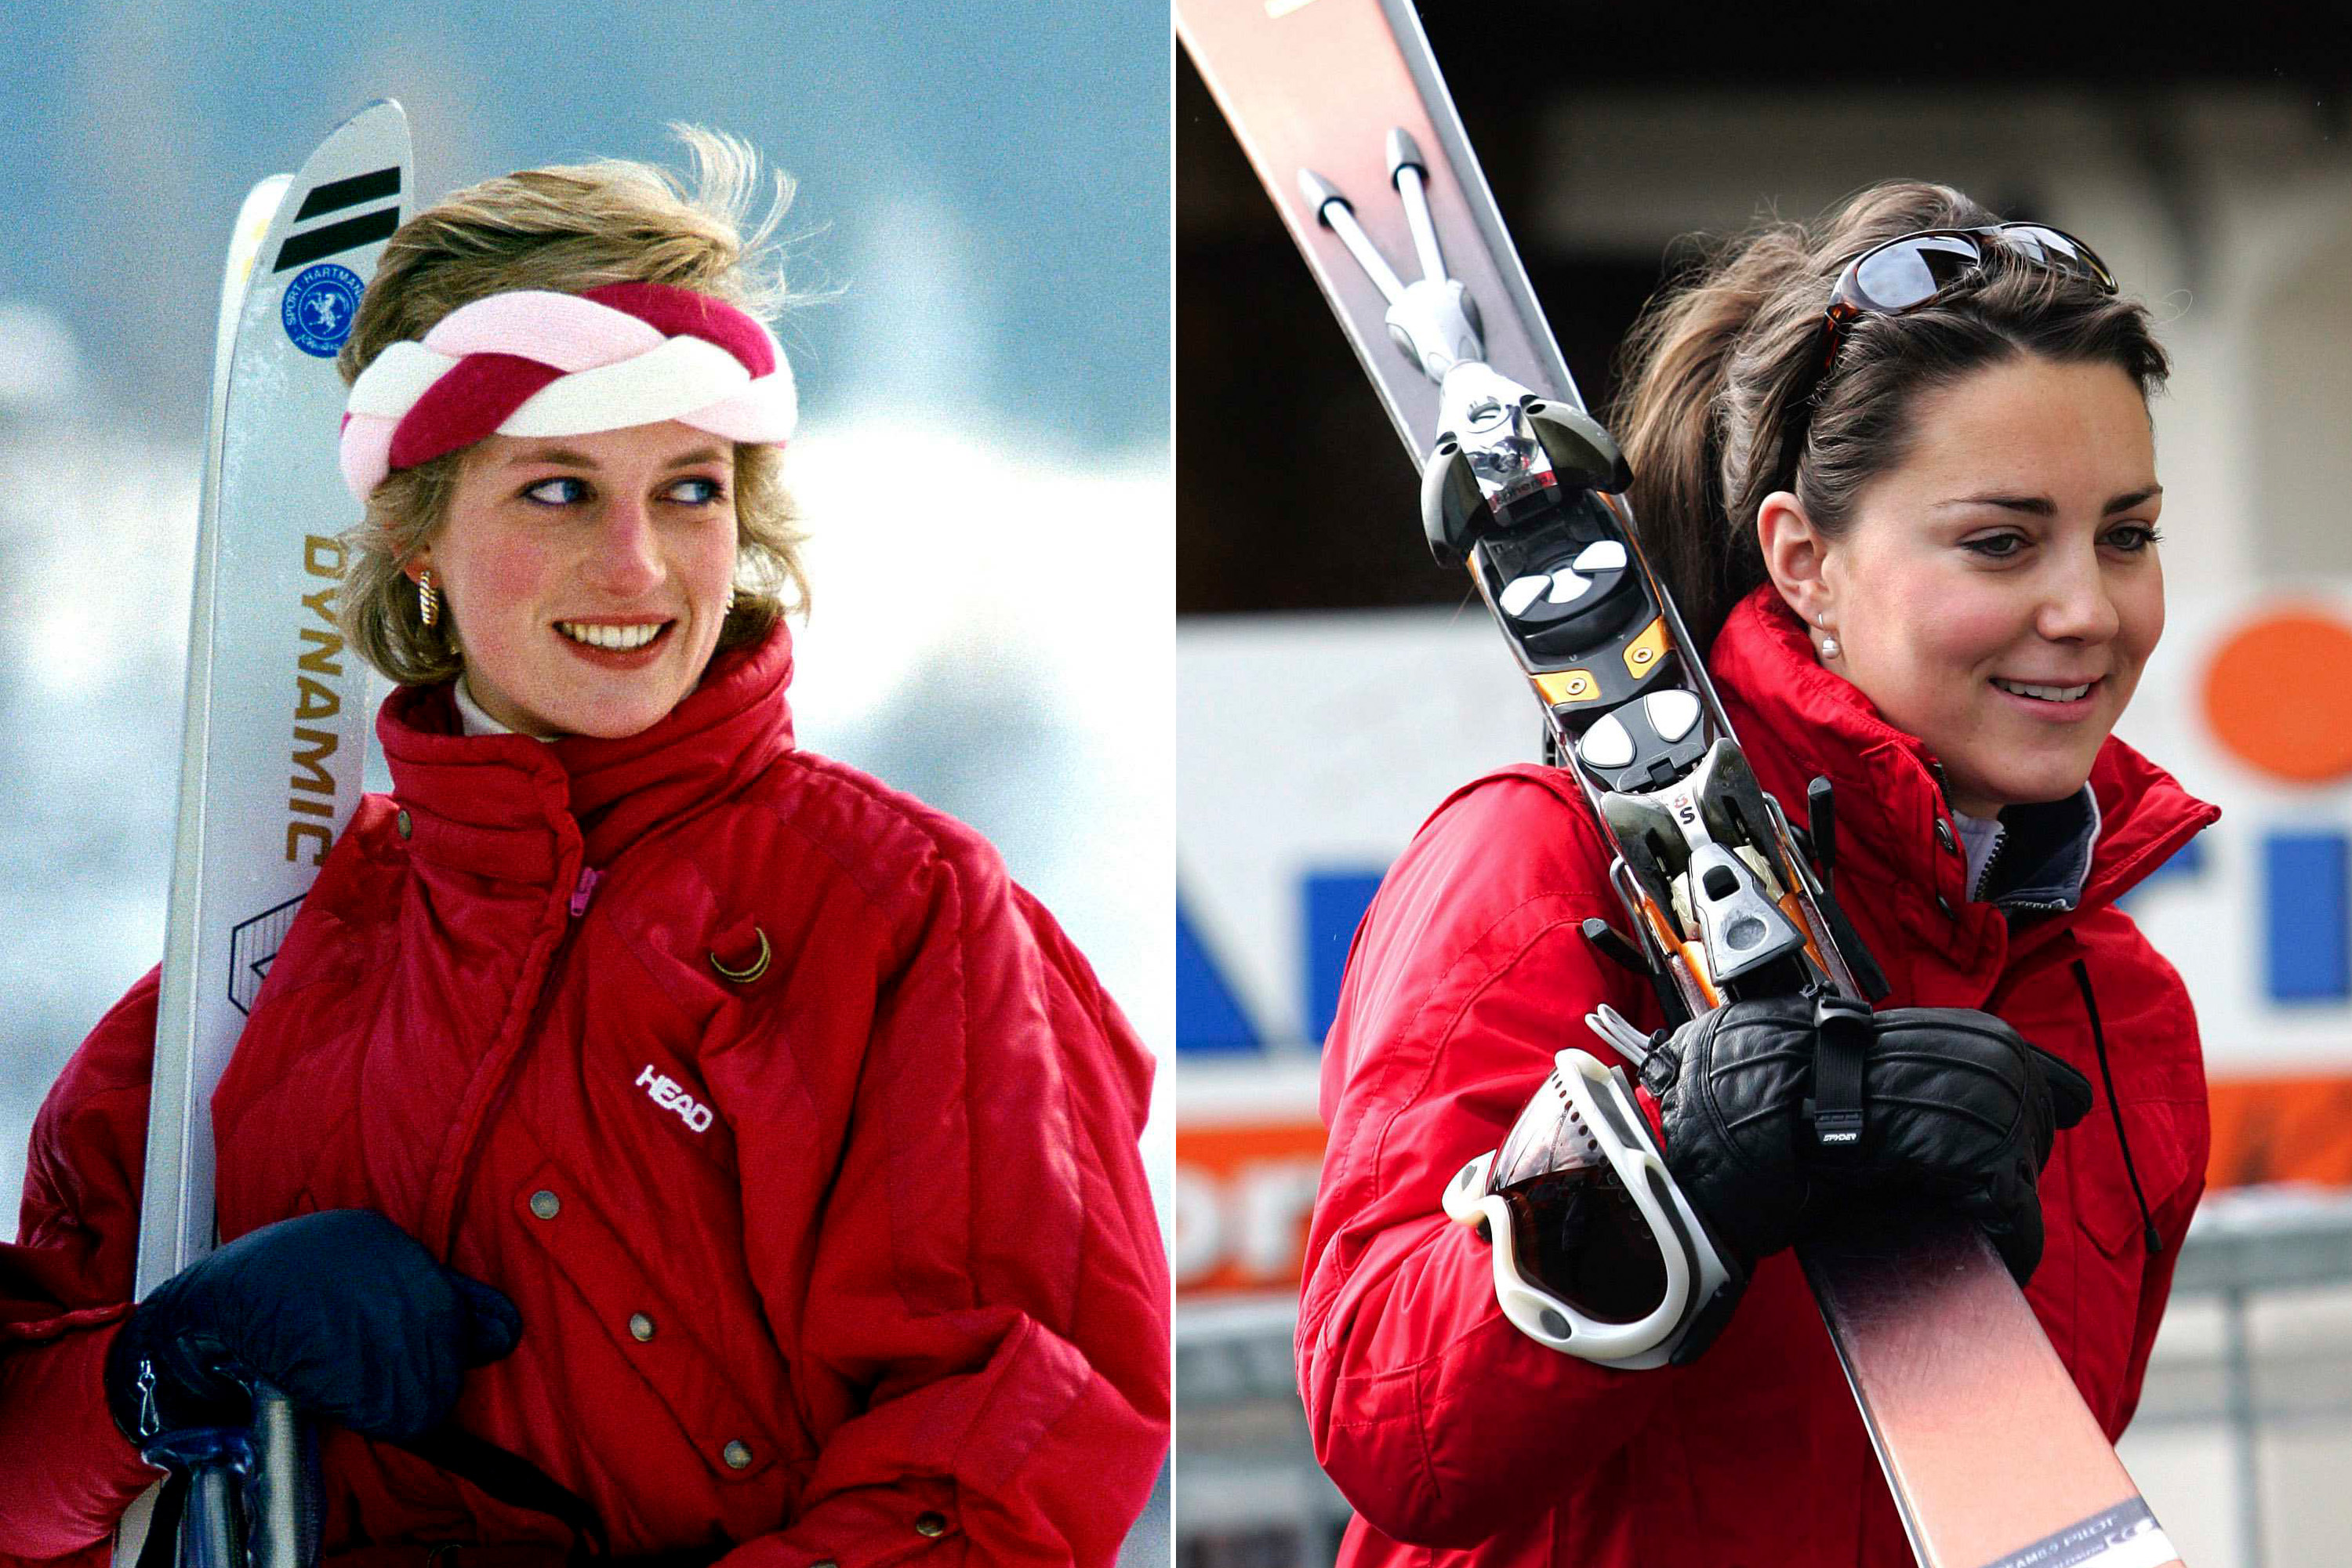 Bright red skiwear was a striking choice for both Diana and Kate to hit the slopes.